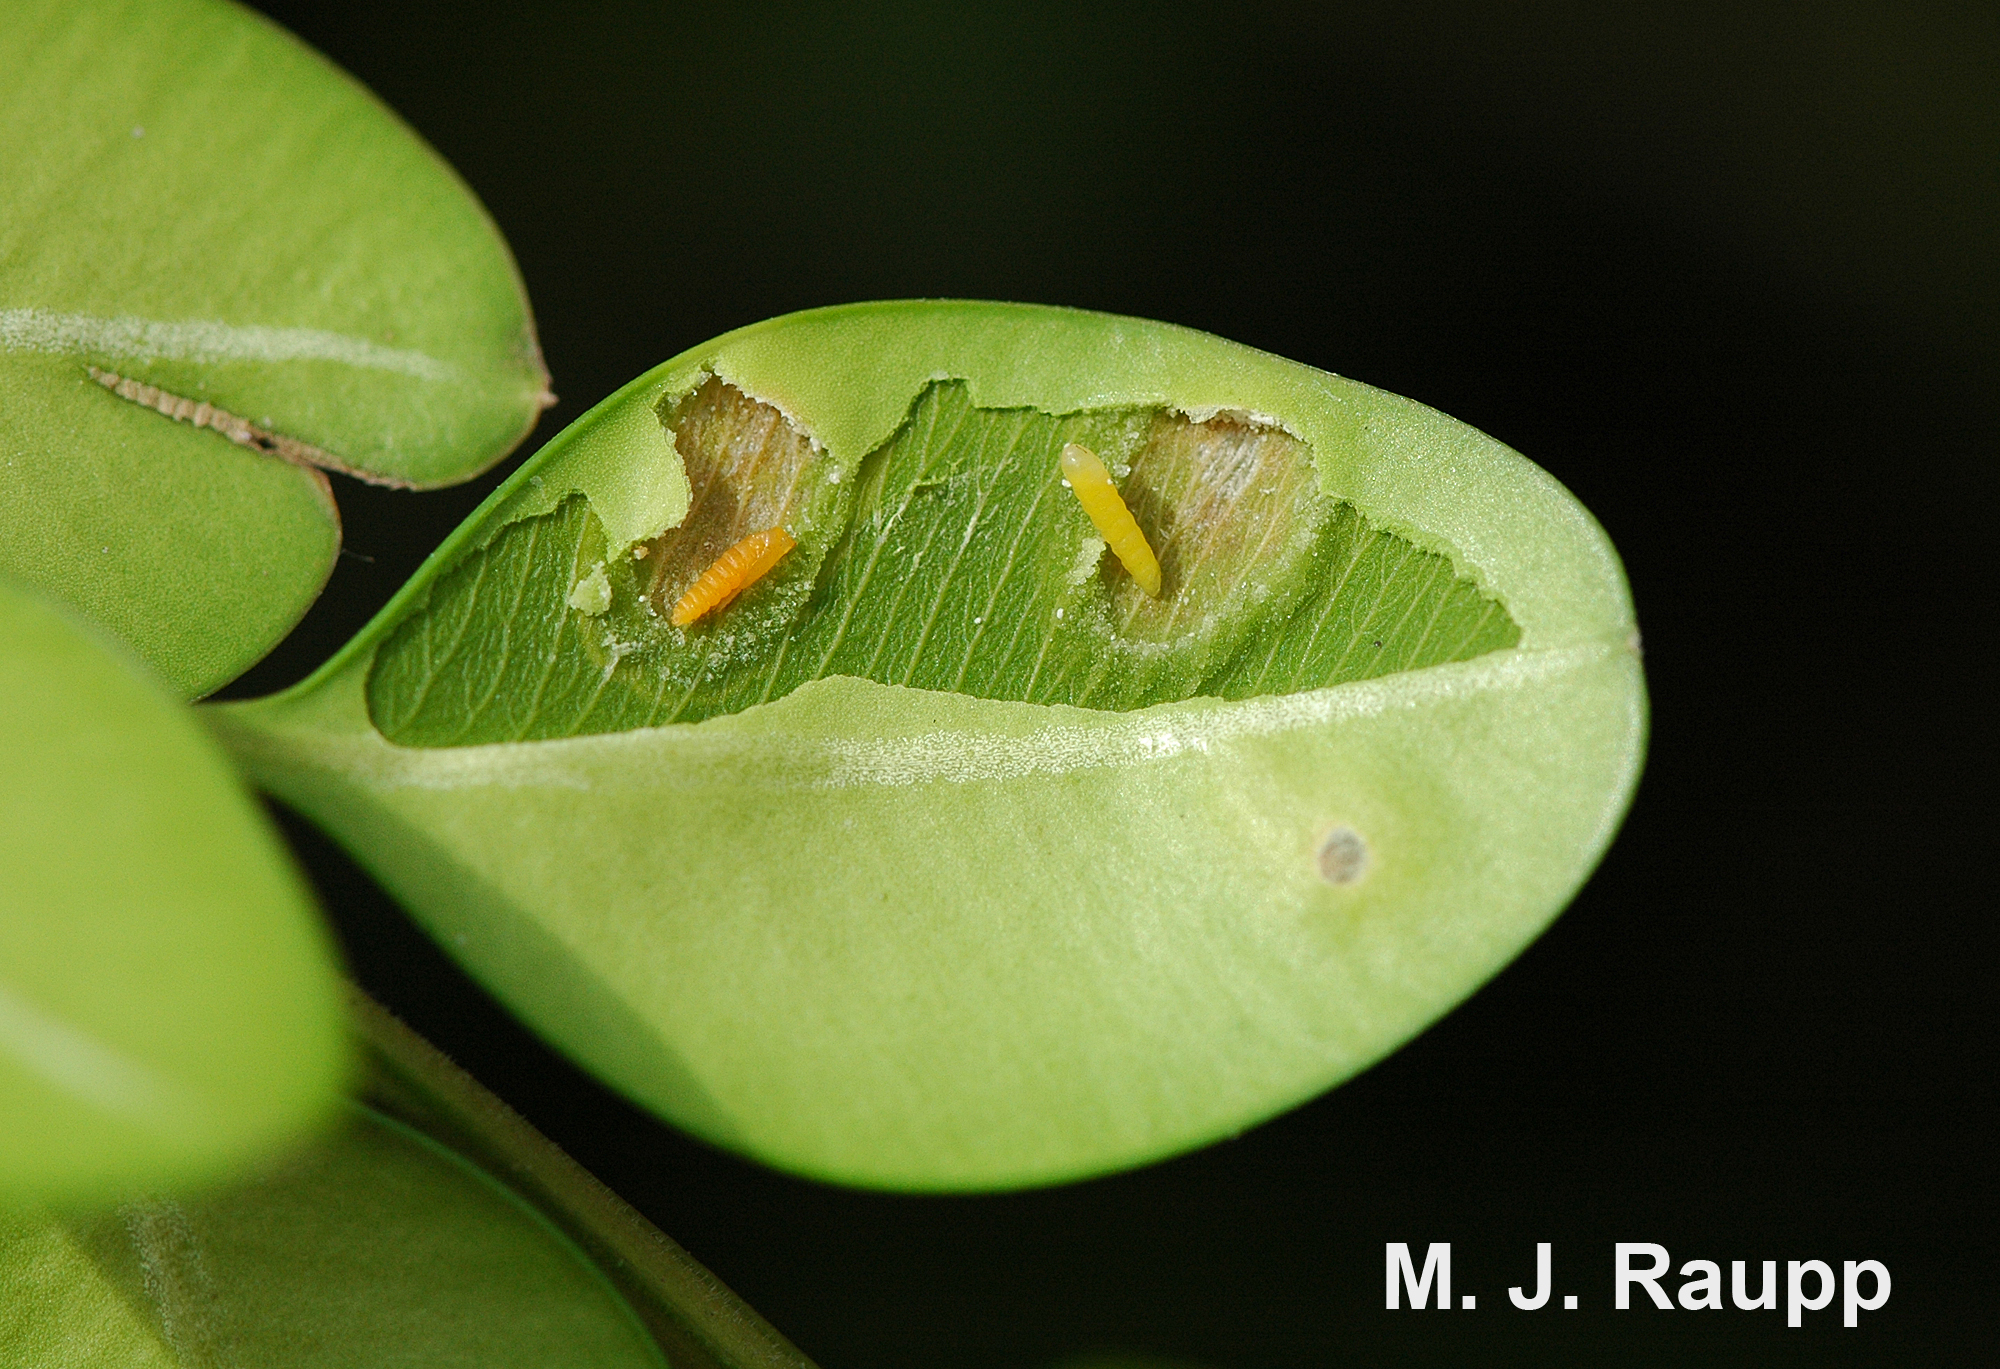 Boxwood leafminer larvae and pupae can be found inside the galled leaf tissue before adults emerge in spring.